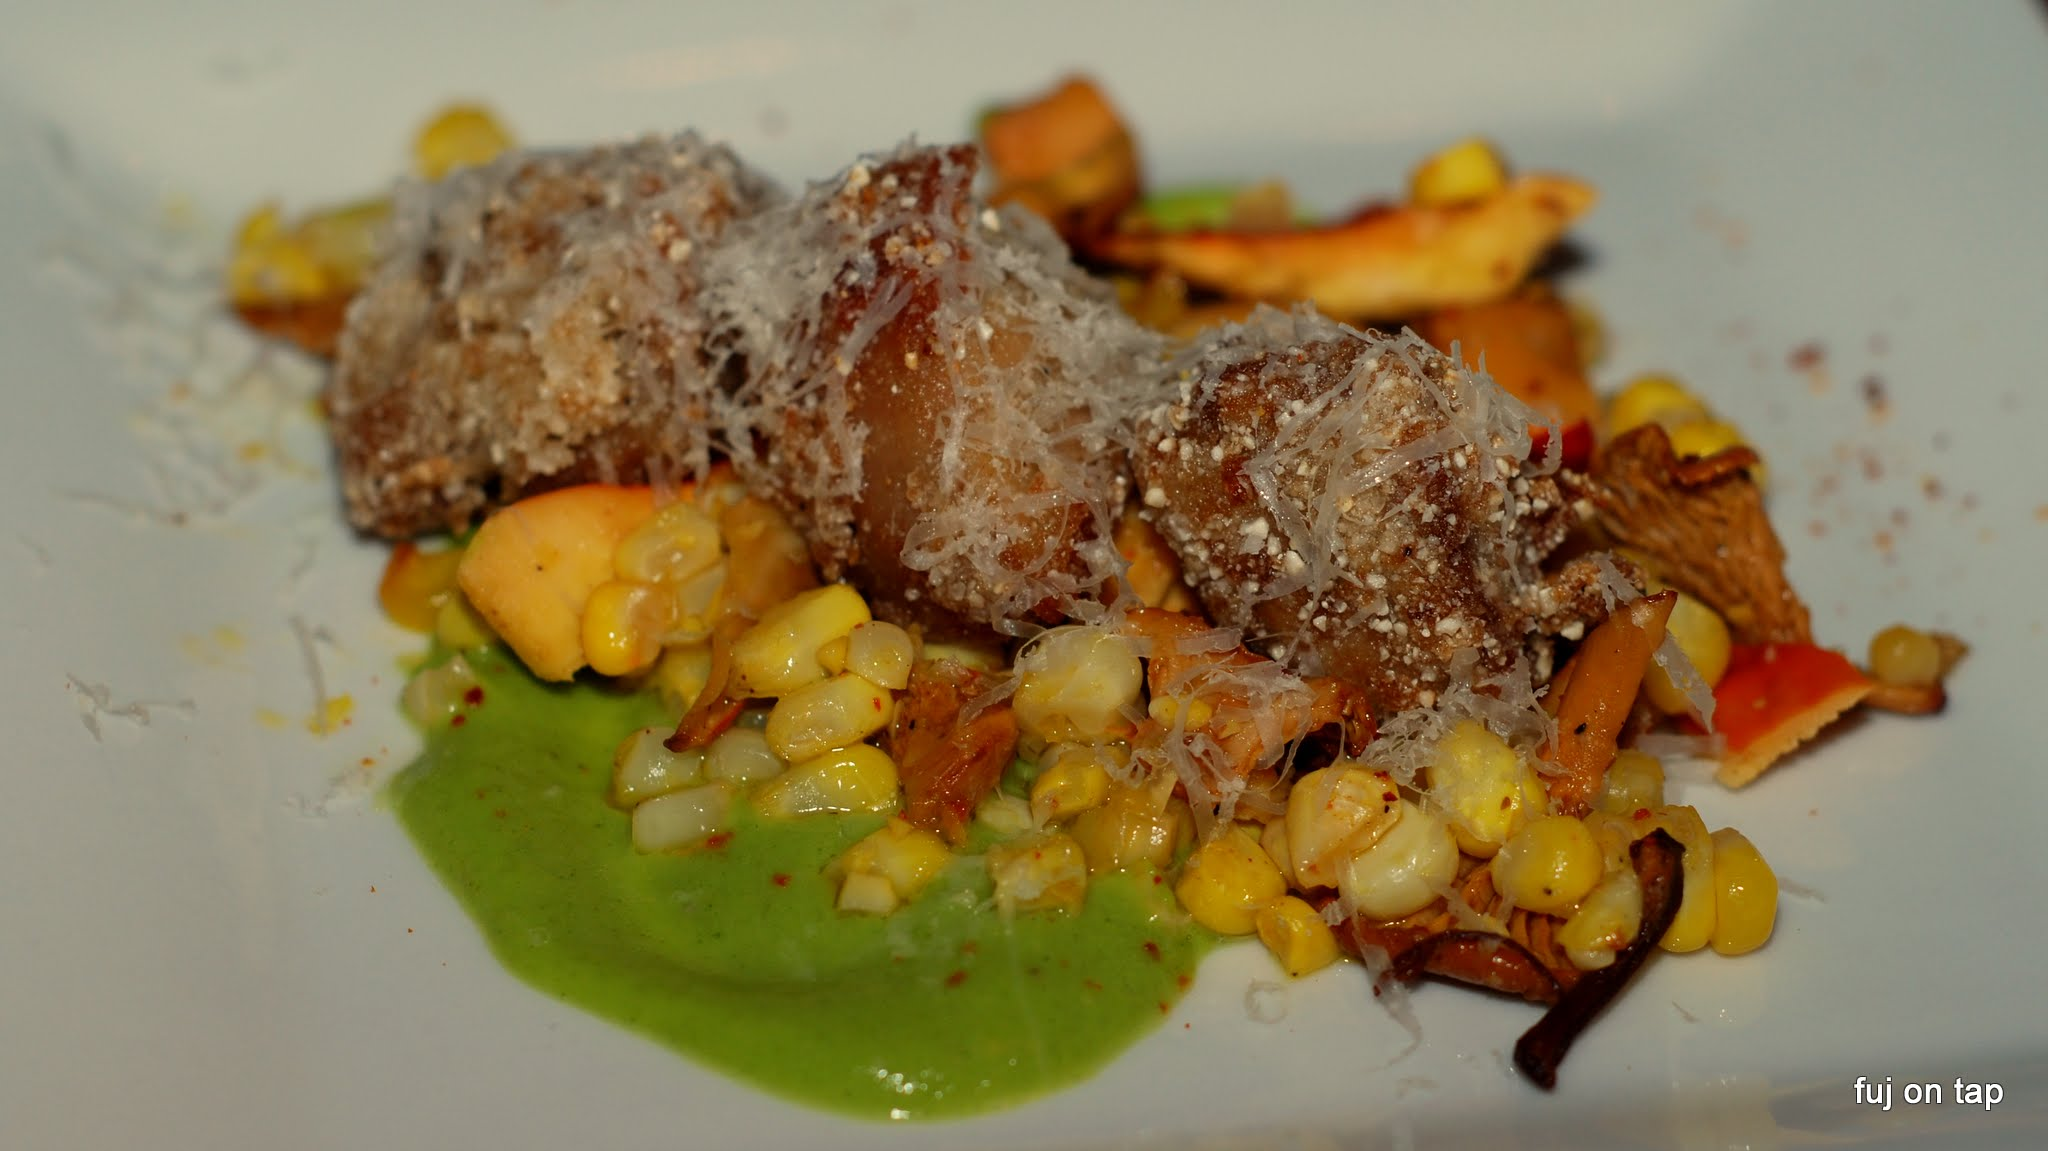 Crispy Veal Sweetbreads, Squash Purée, Sweet Corn, Foraged Mushrooms, Cultured Butter, Parmigiano Reggiano, Lemon, Espelette